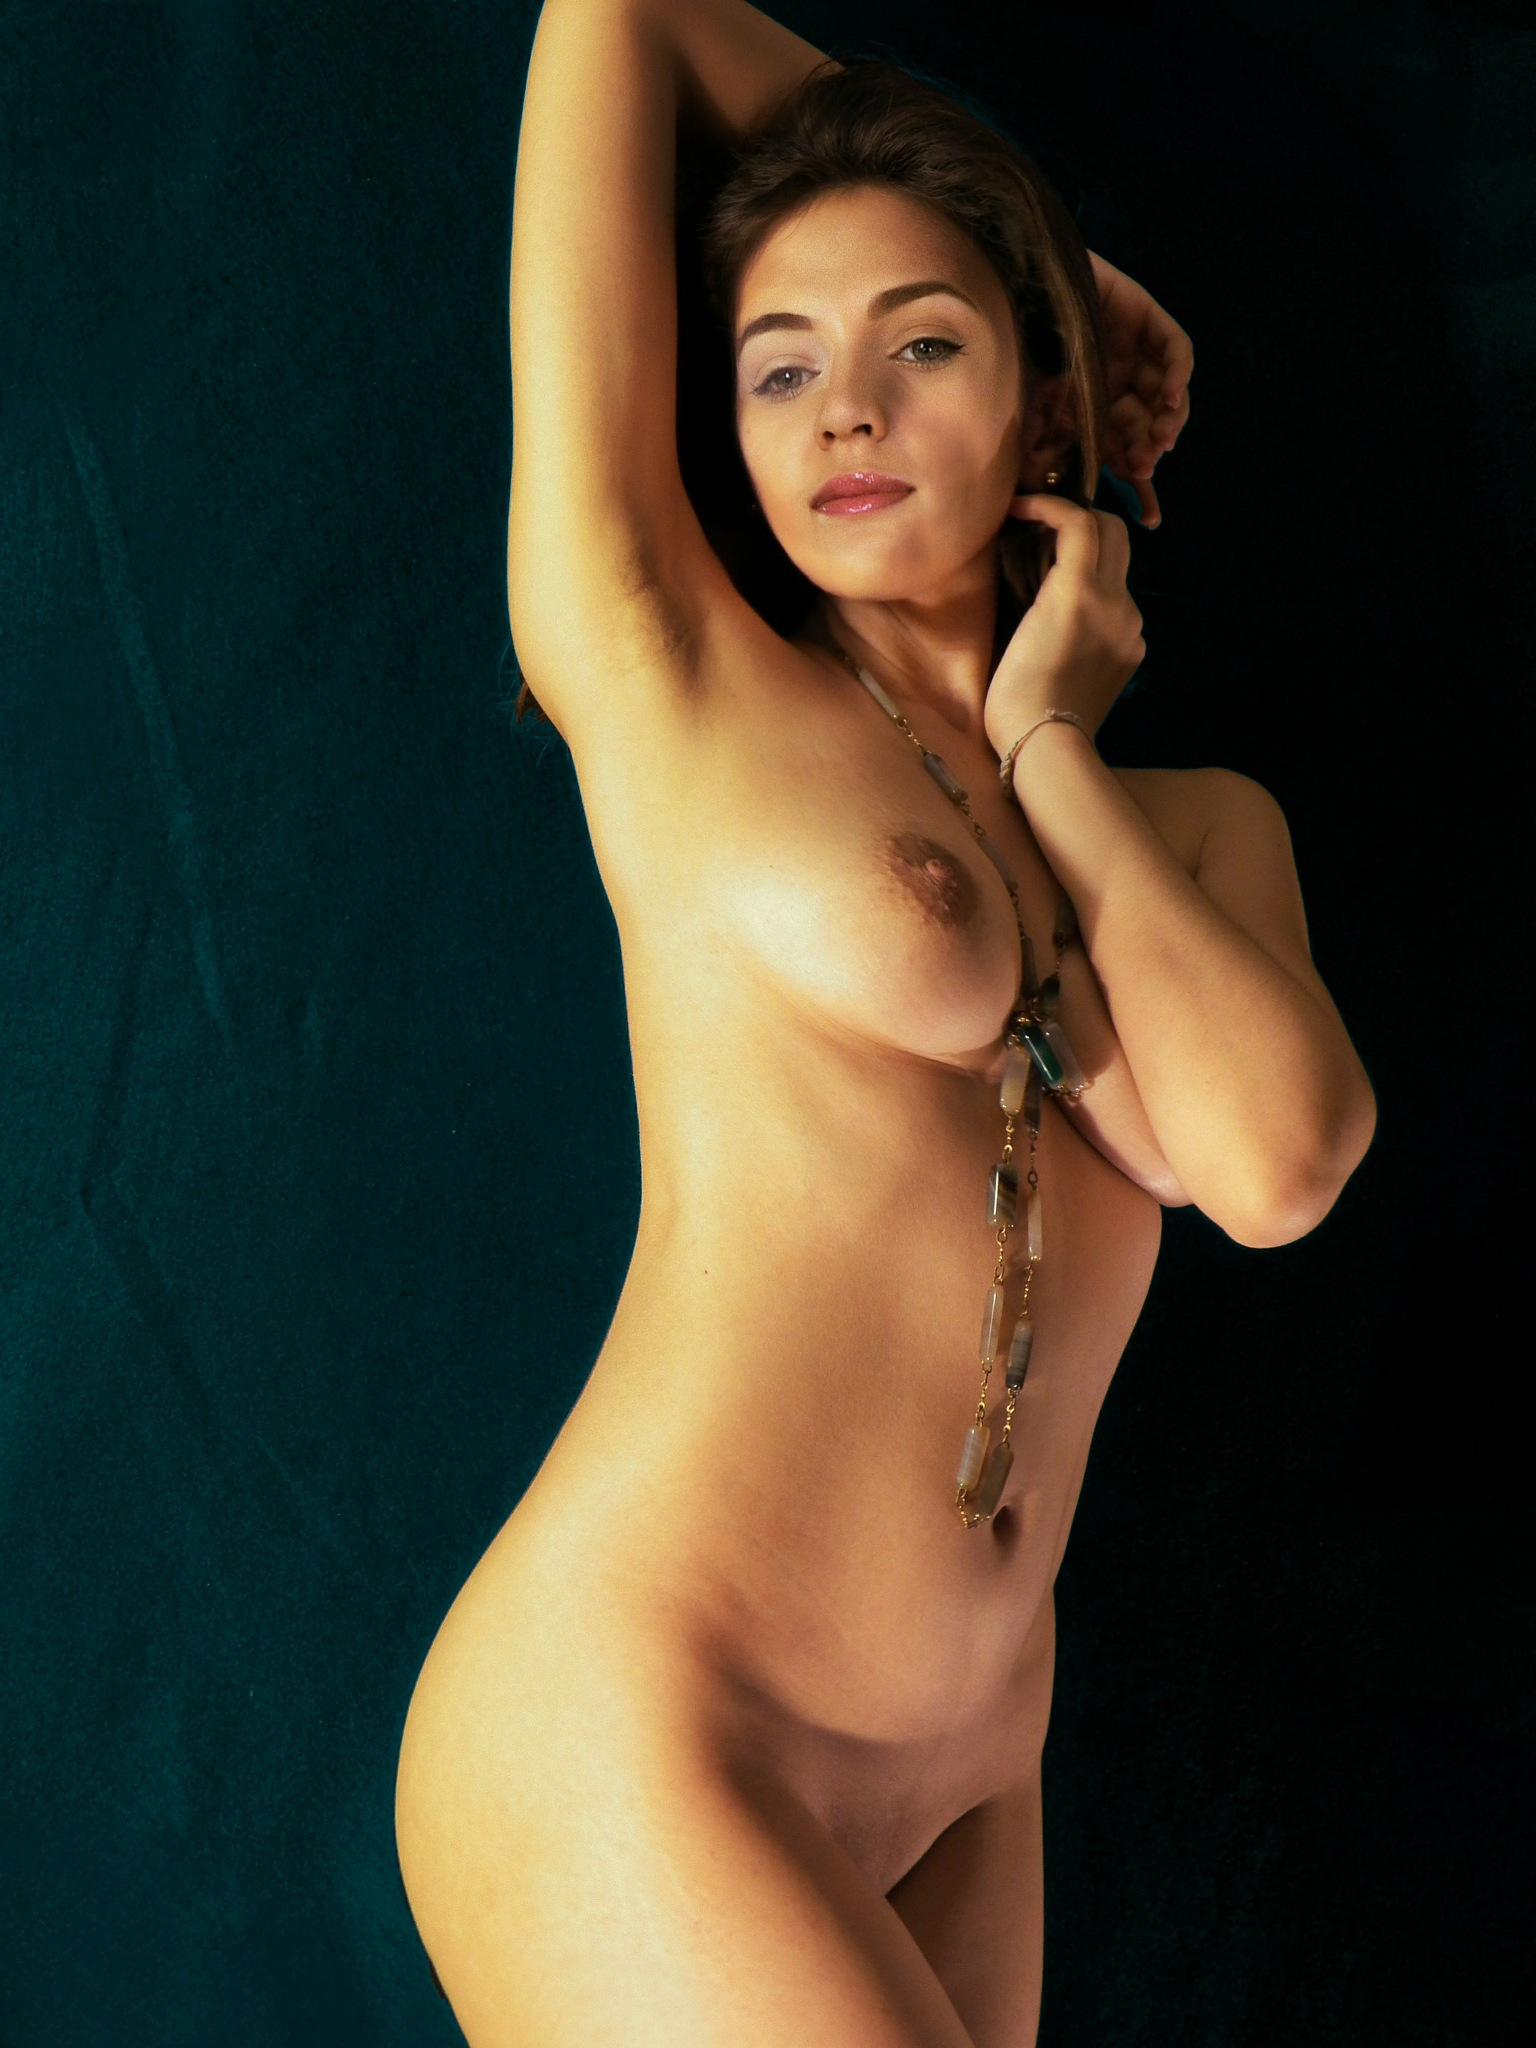 The model V (Nude study 16) by JuanM